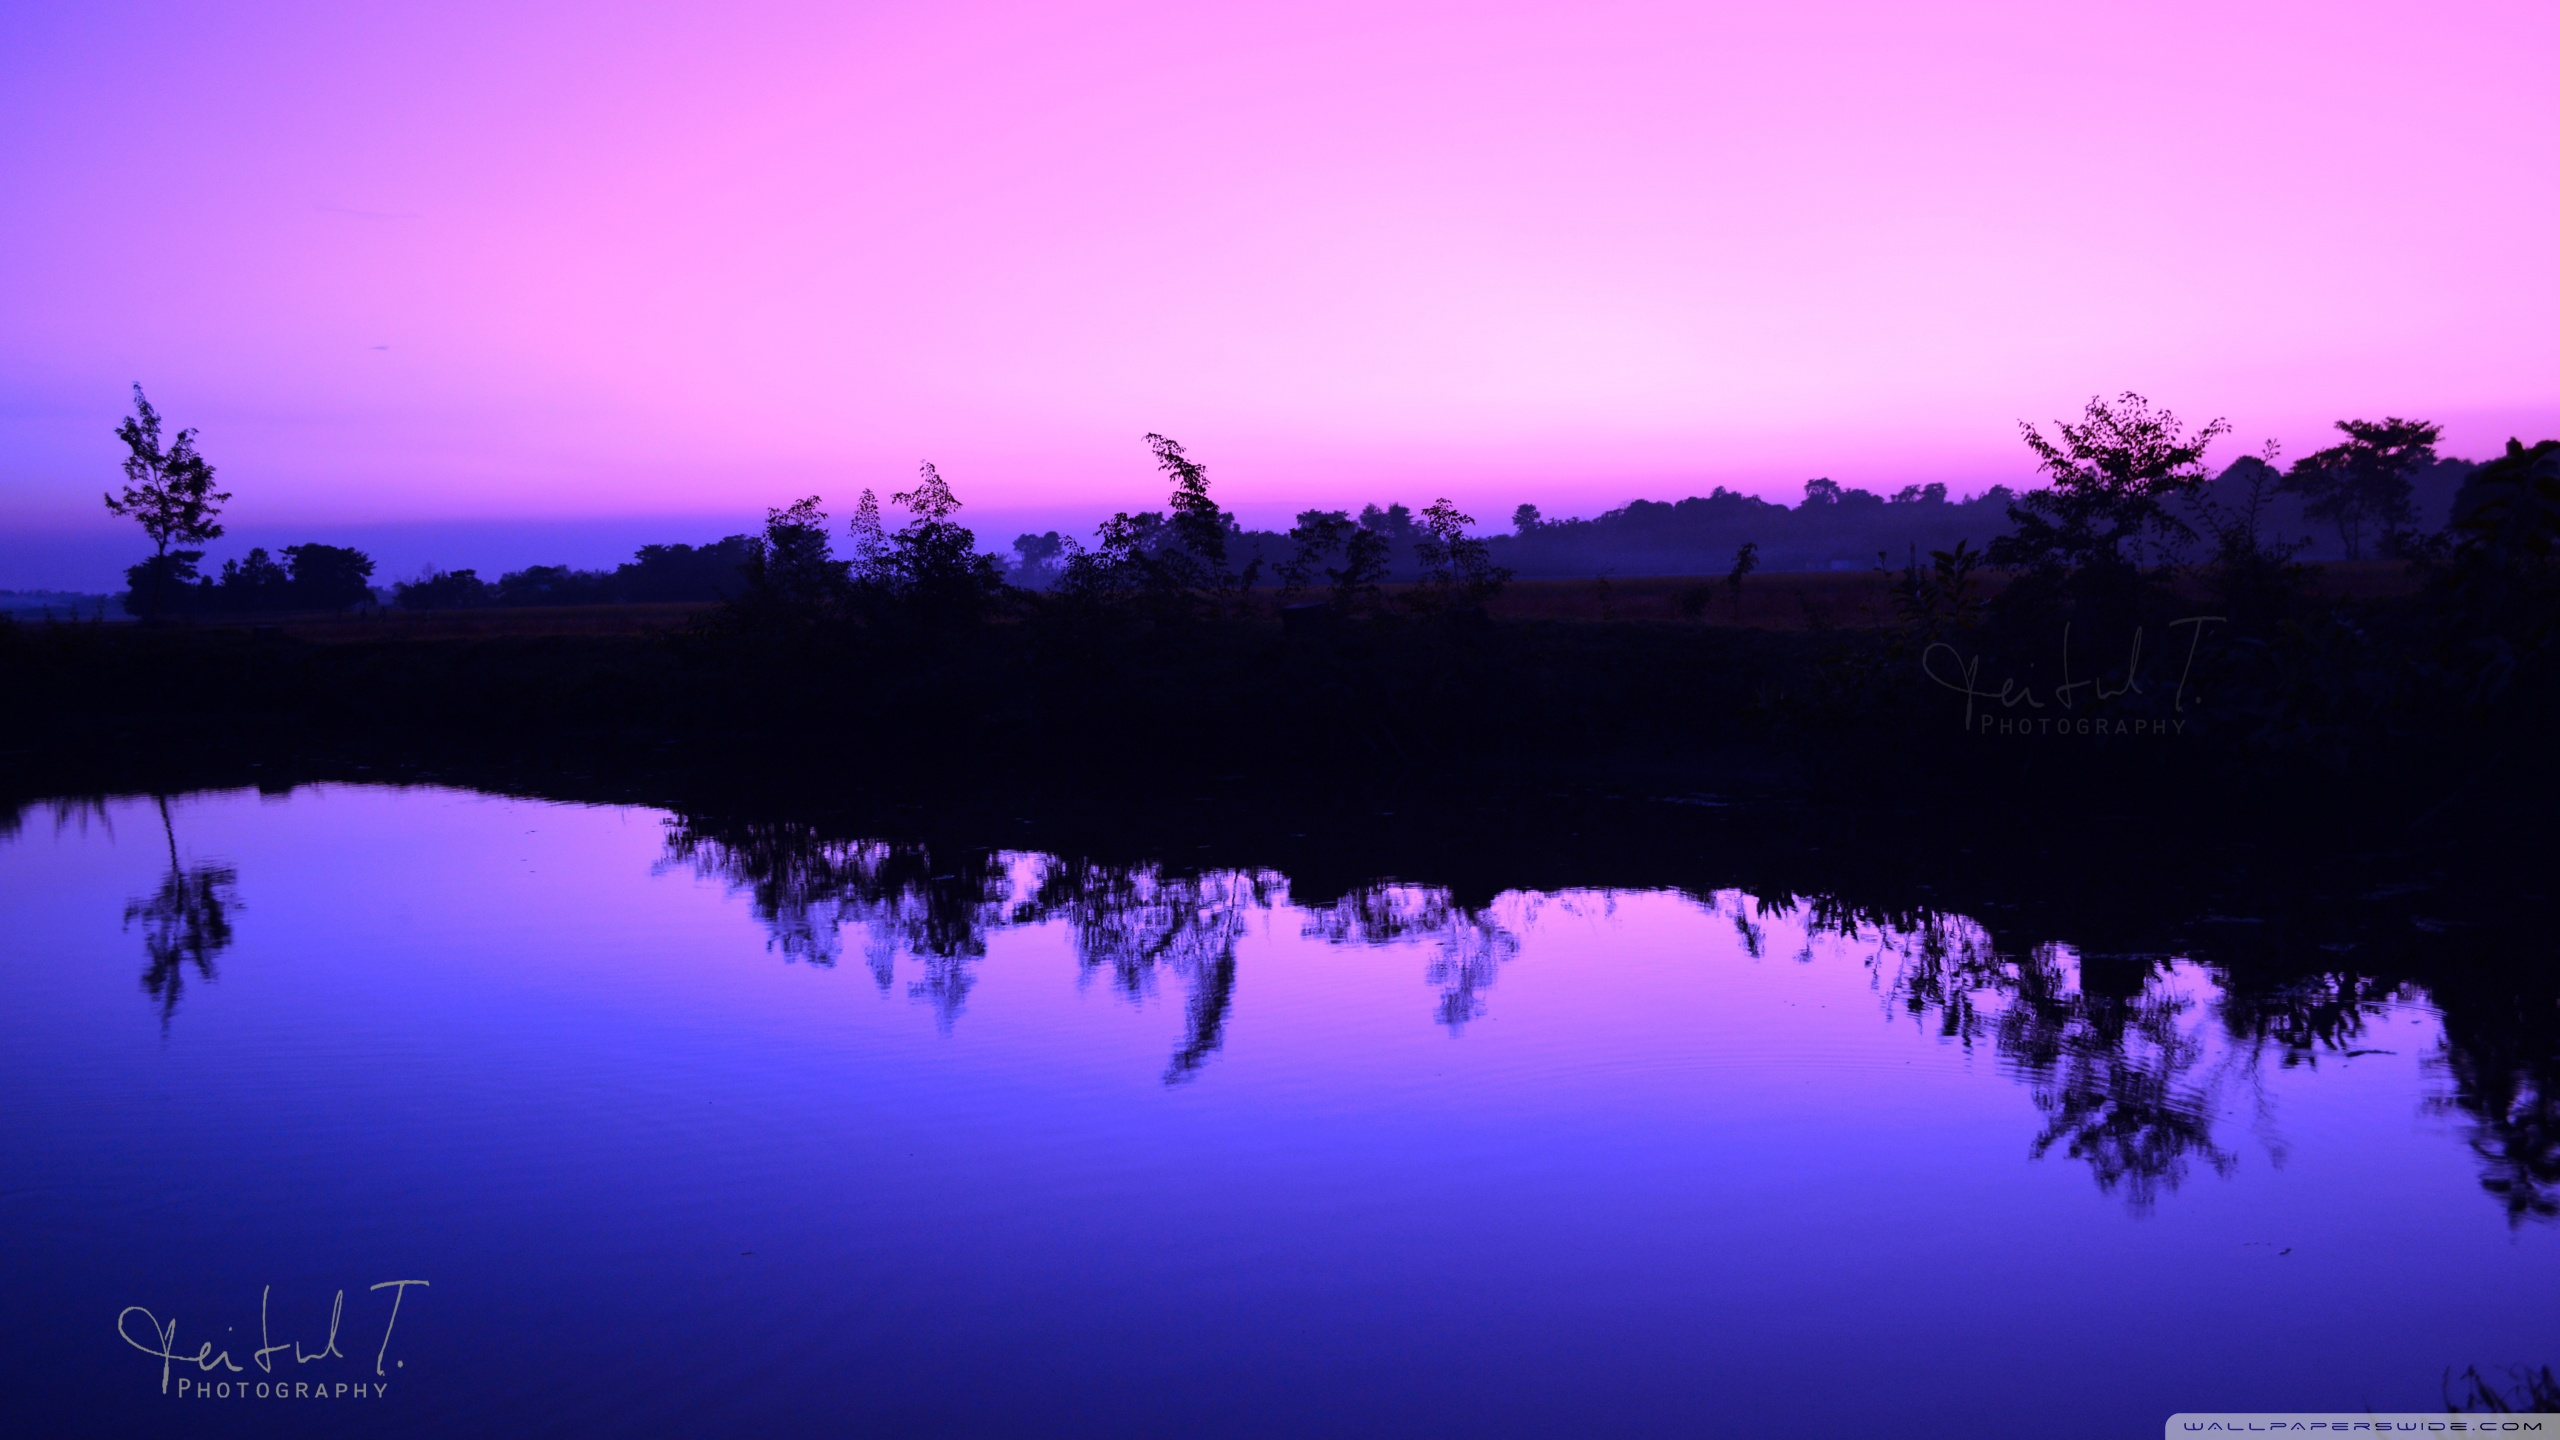 purple_sky_7-wallpaper-2560x1440